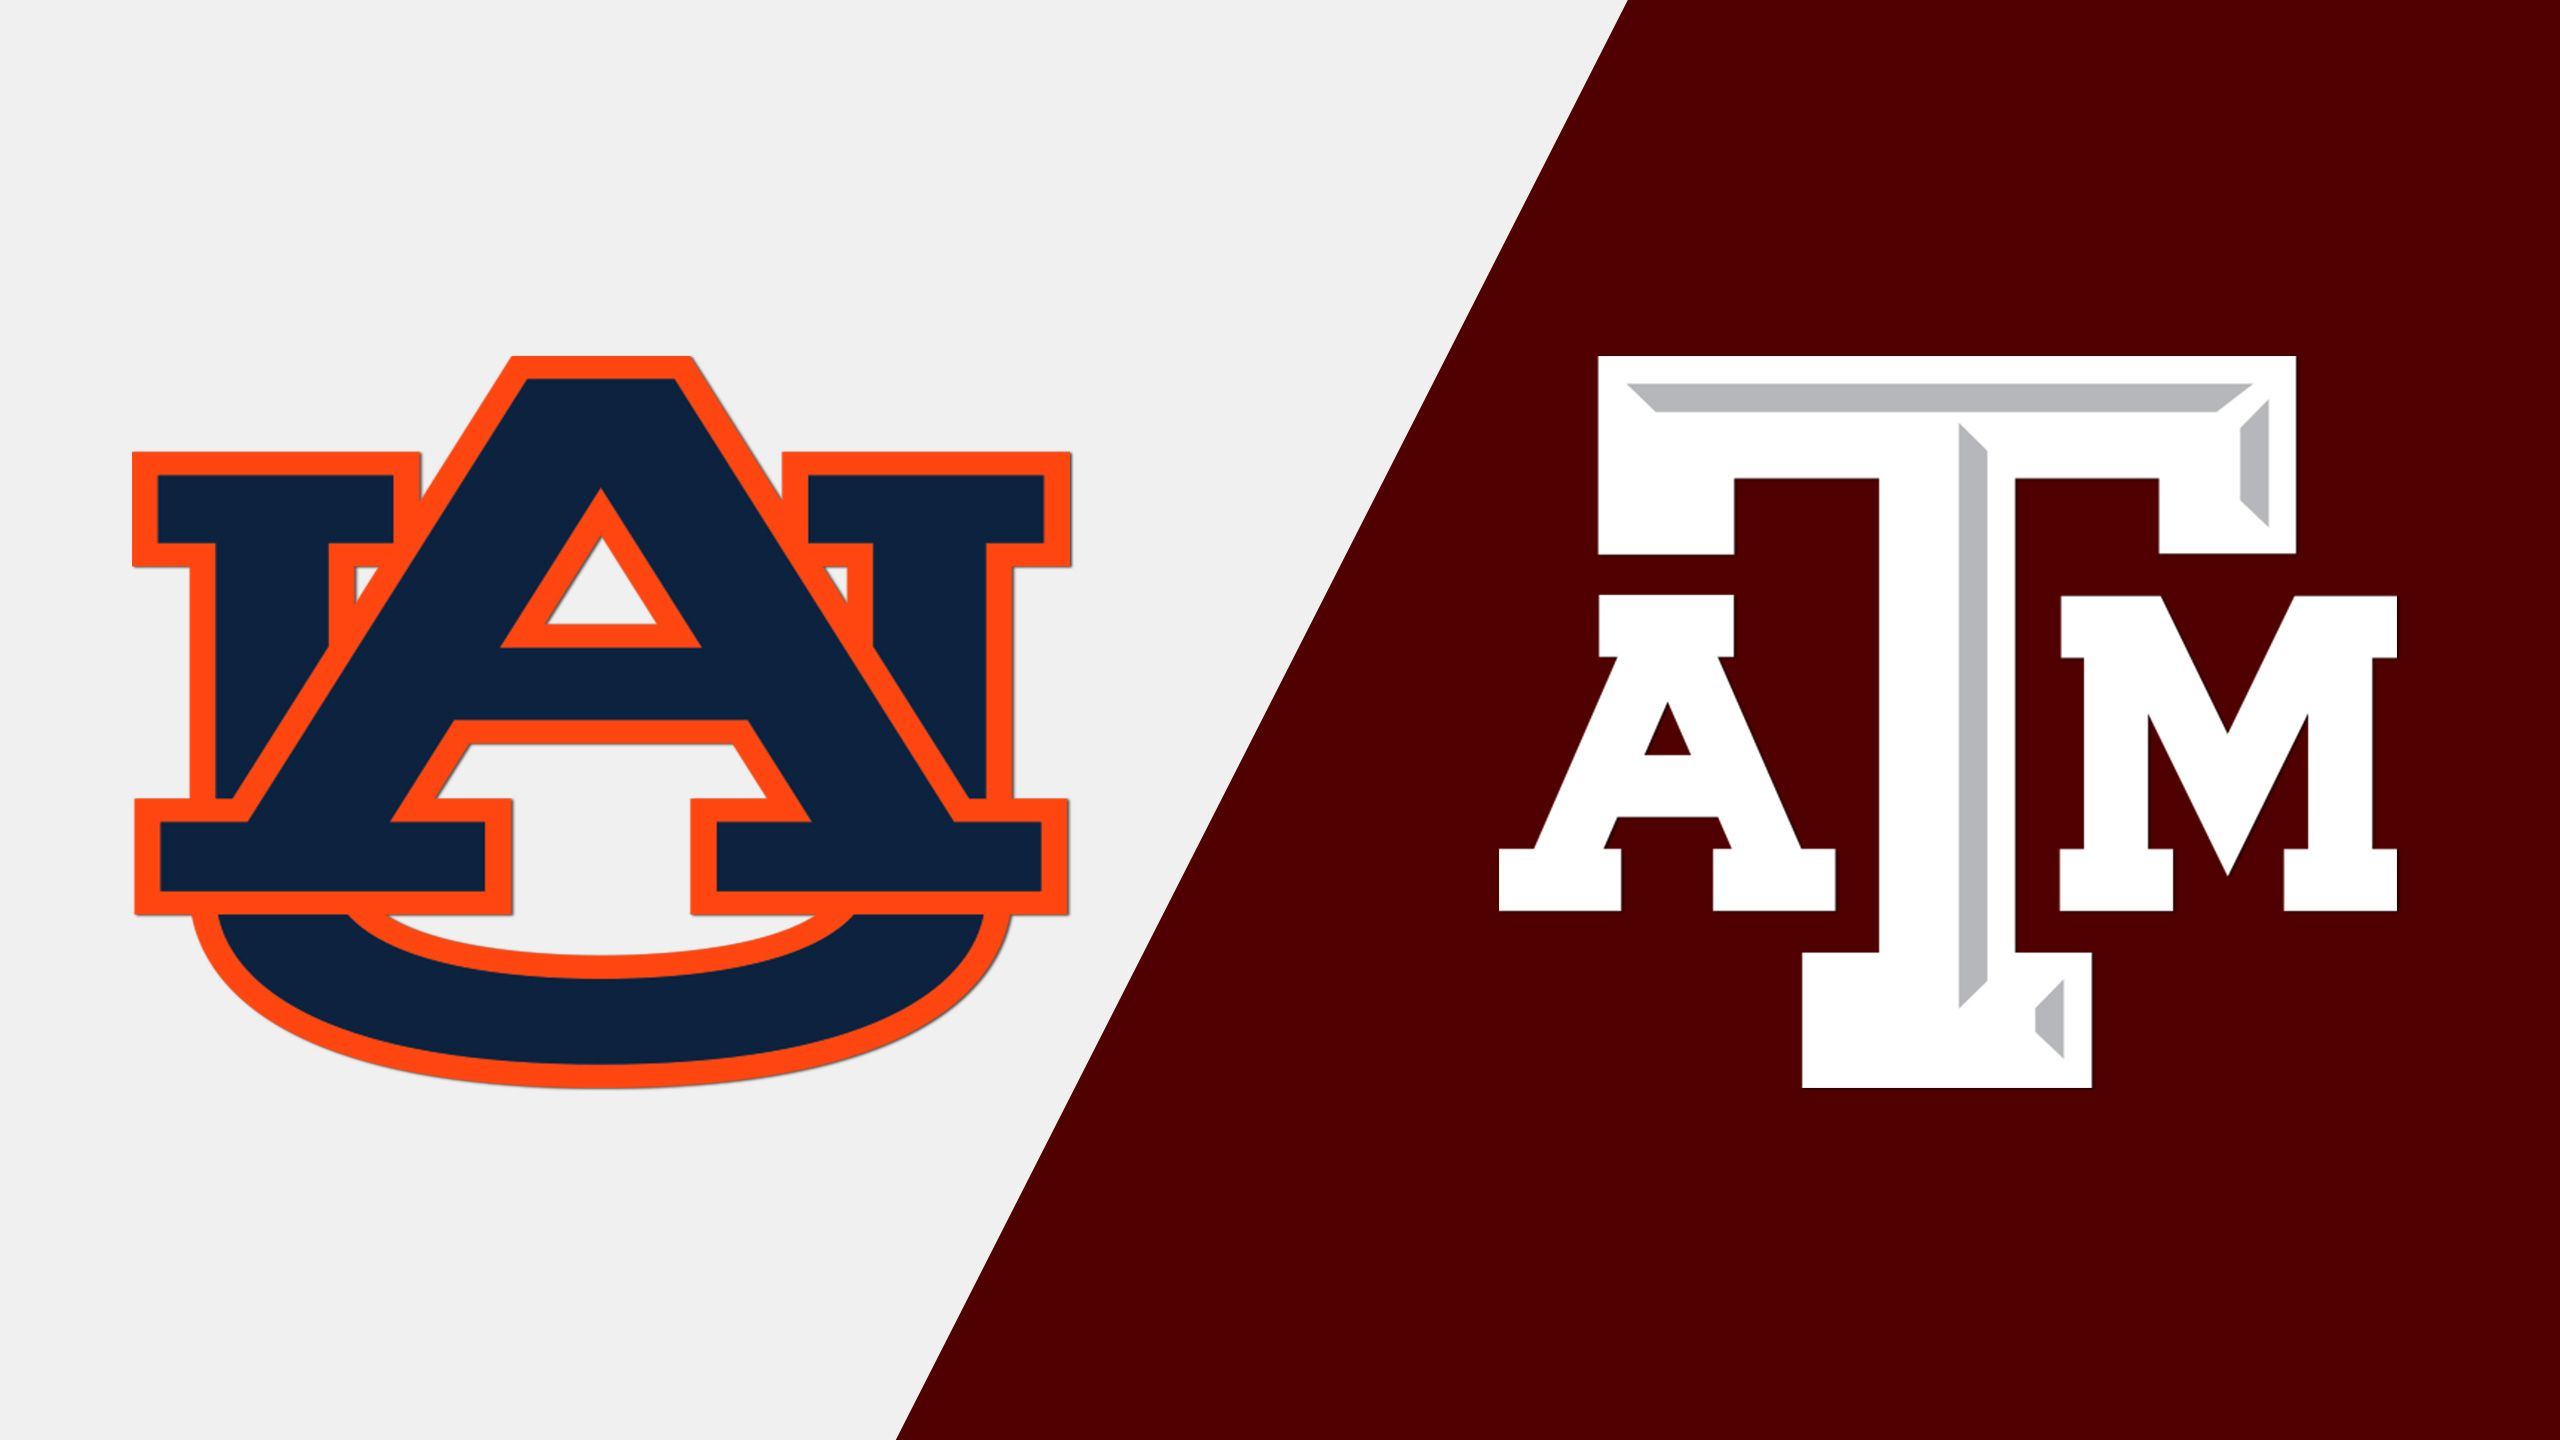 #15 Auburn vs. #12 Texas A&M (Softball)